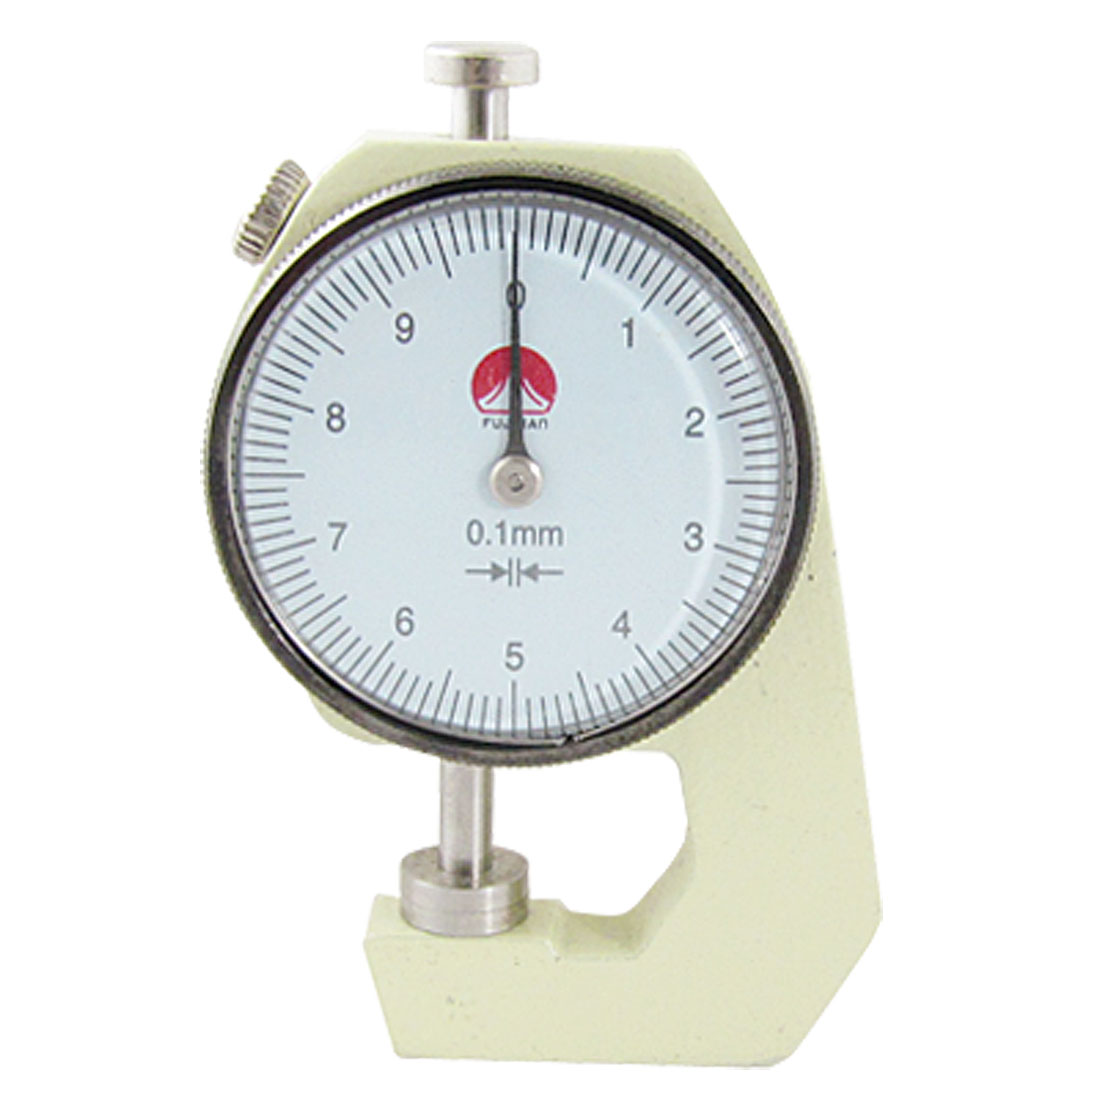 Unique Bargains Dial Indicator Pocket Thickness Gauge Gage 0 to 10mm Aqqsn by Unique-Bargains